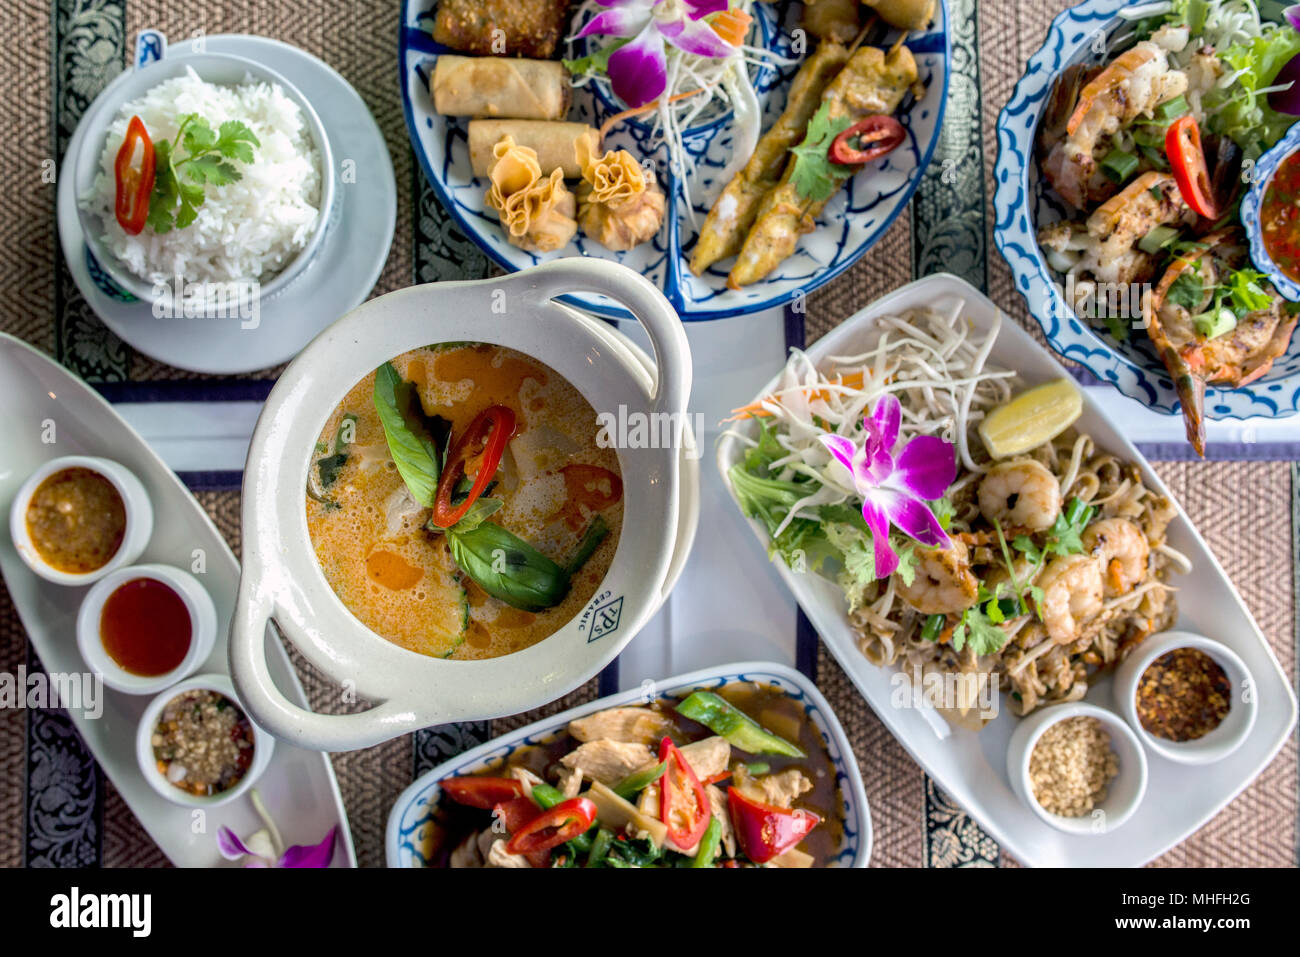 Thai Food in a Restaurant Photo Stock